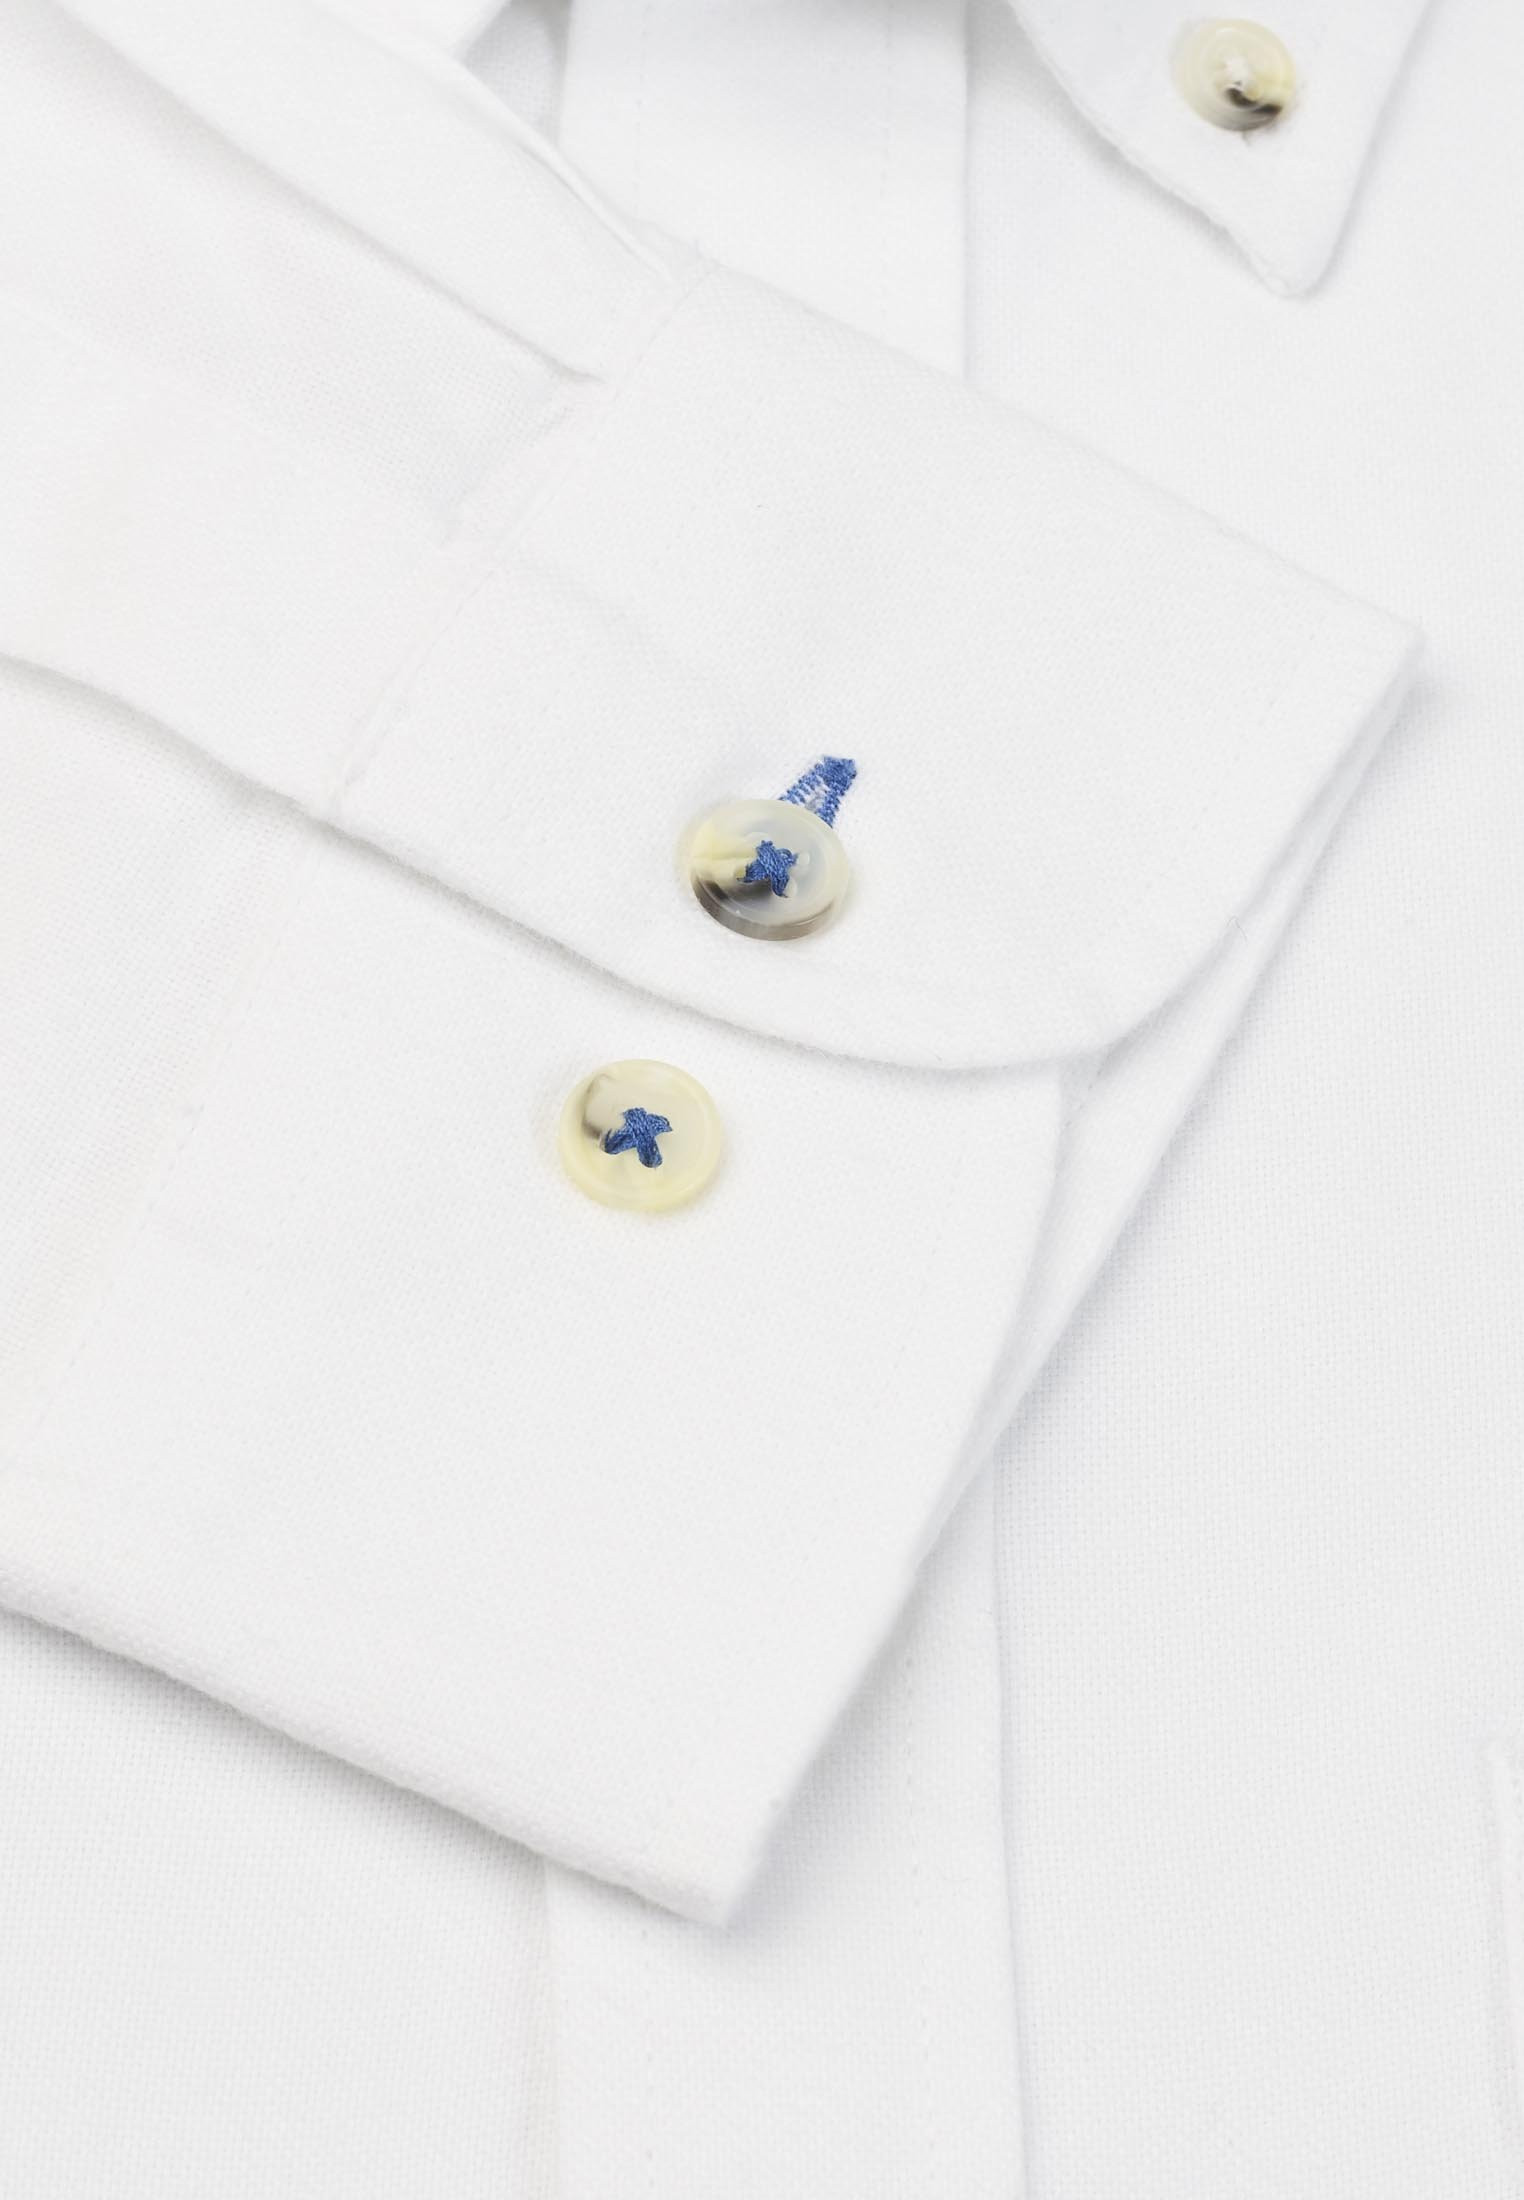 Long Sleeve White Soft Touch Oxford Button Down Collar Shirt